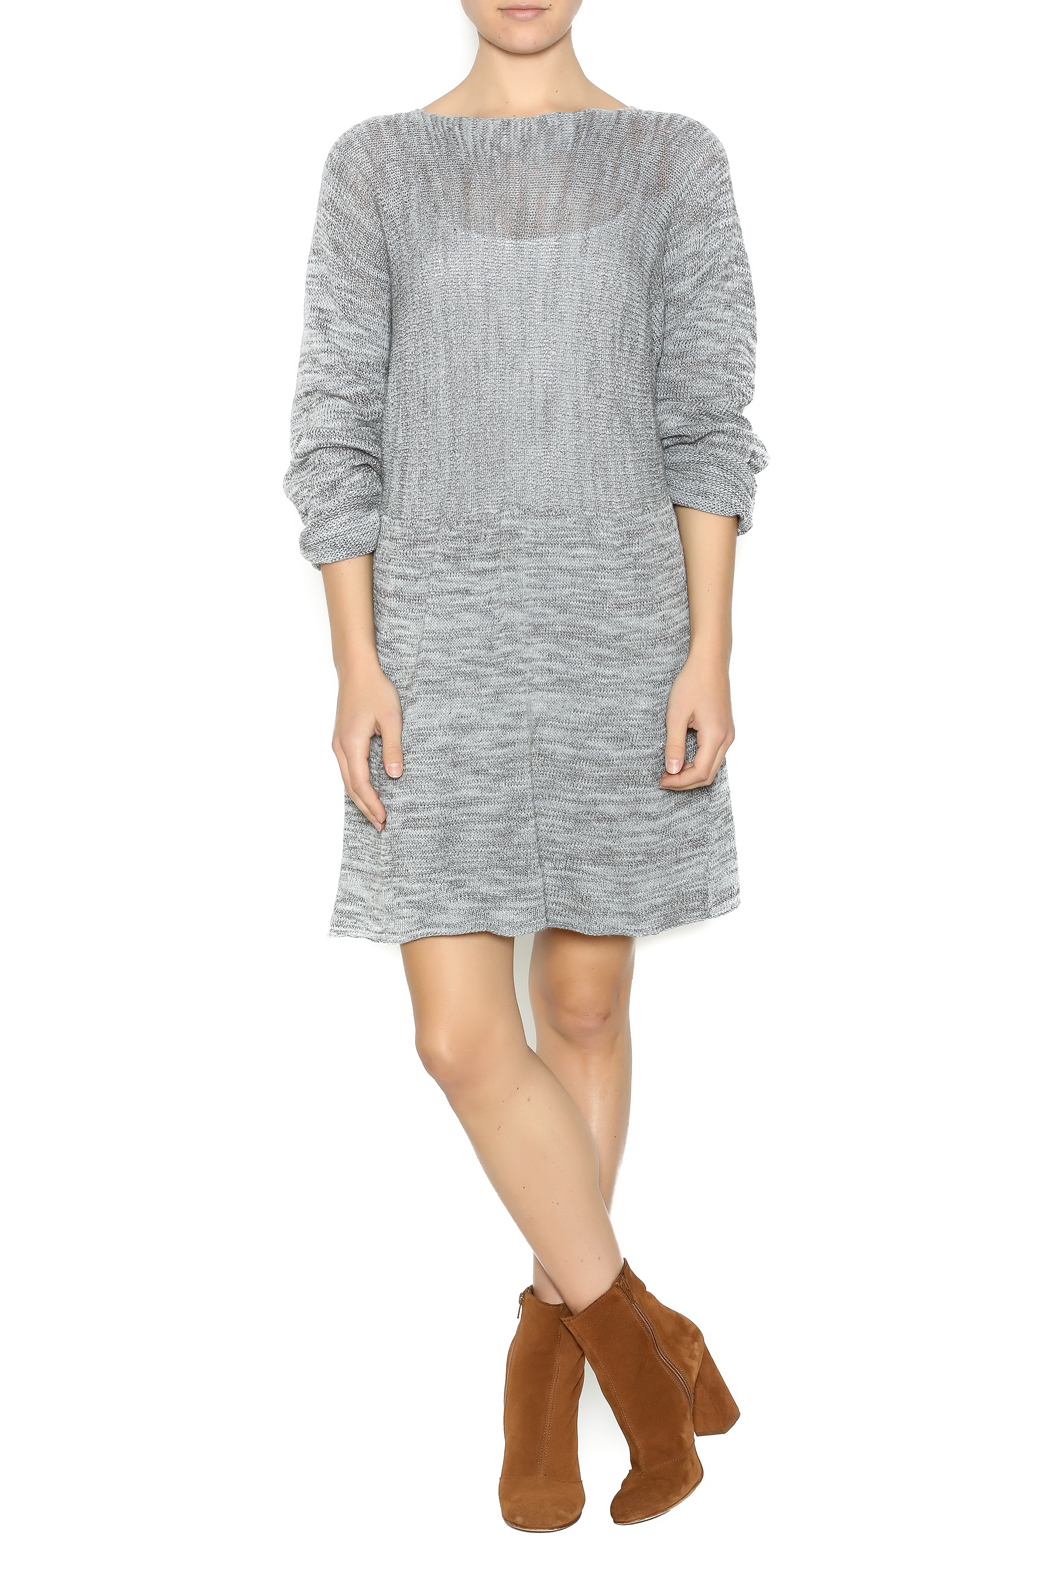 DC KNITS Grey Sweater Dress - Front Full Image